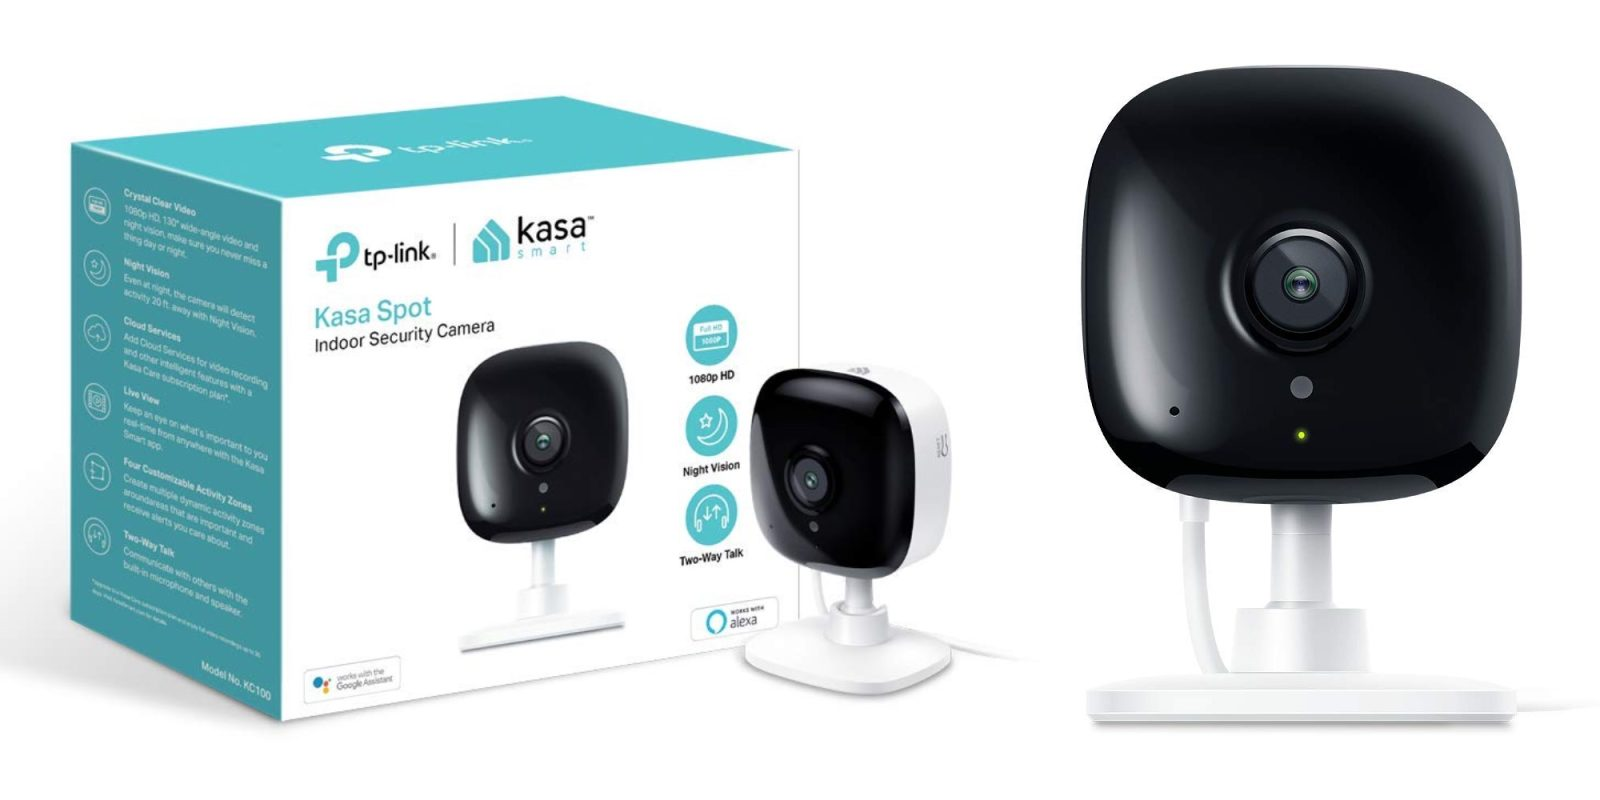 TP-Link's Kasa Spot works with Alexa + Assistant for $35 (Reg. $50)